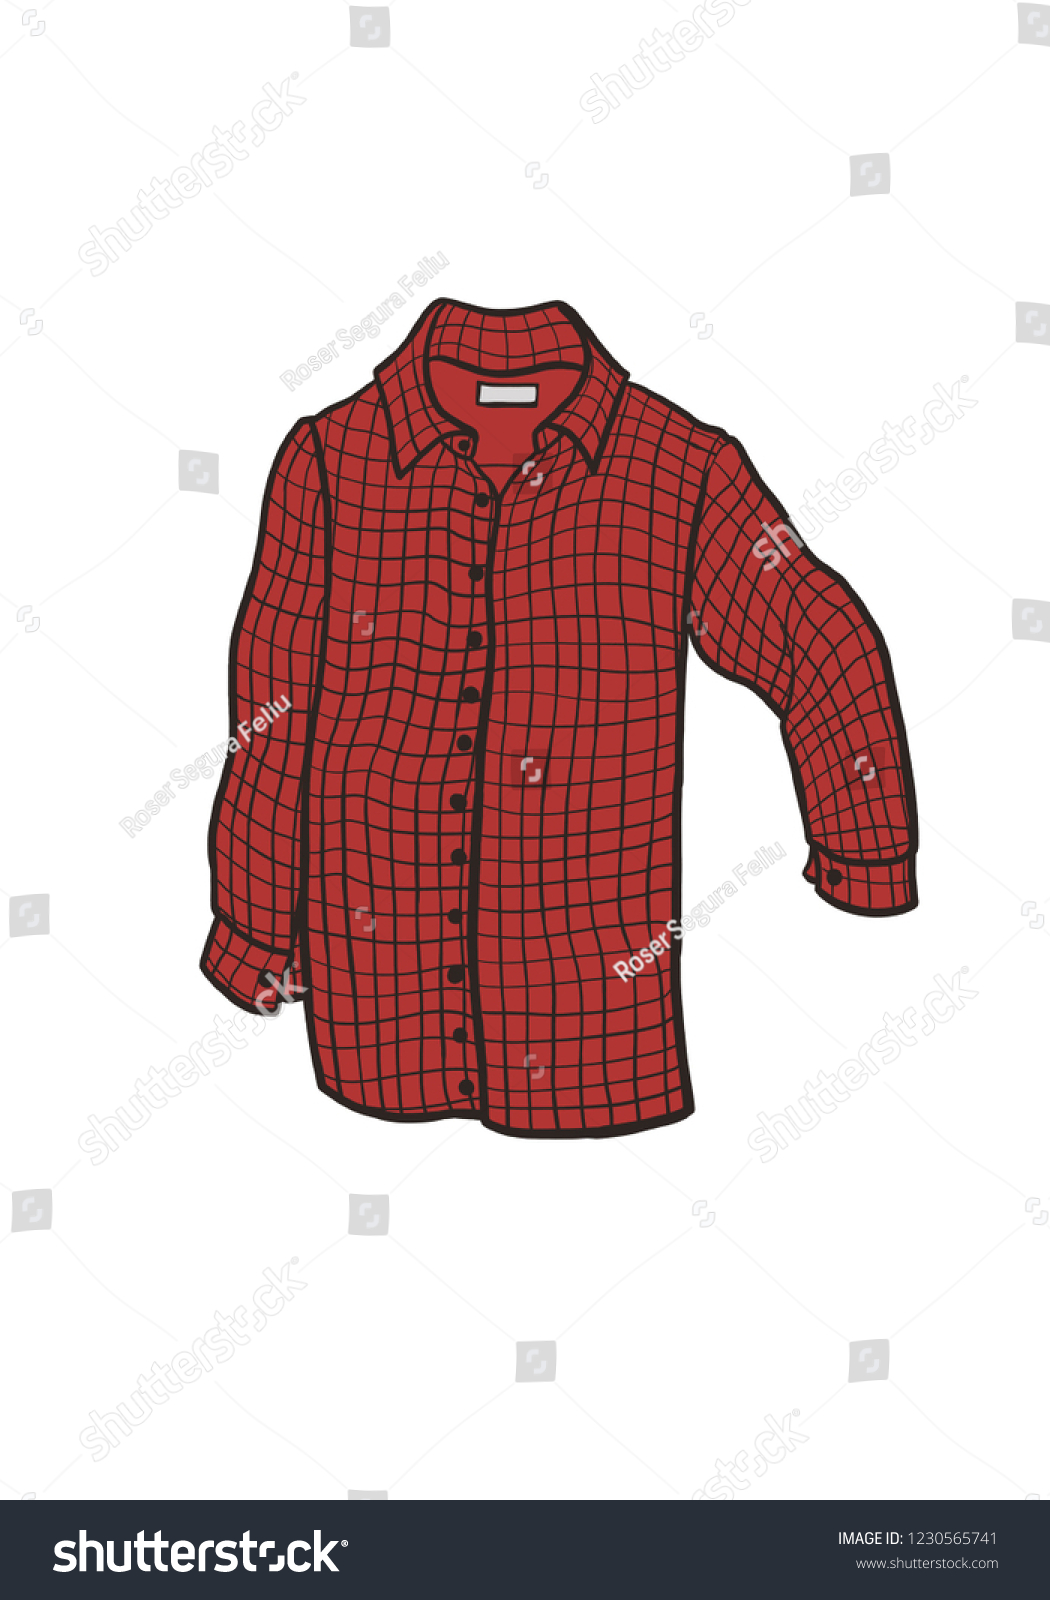 01bf8d3ab25 Checkered red shirt with long sleeve cartoon drawing. Man s casual  clothing